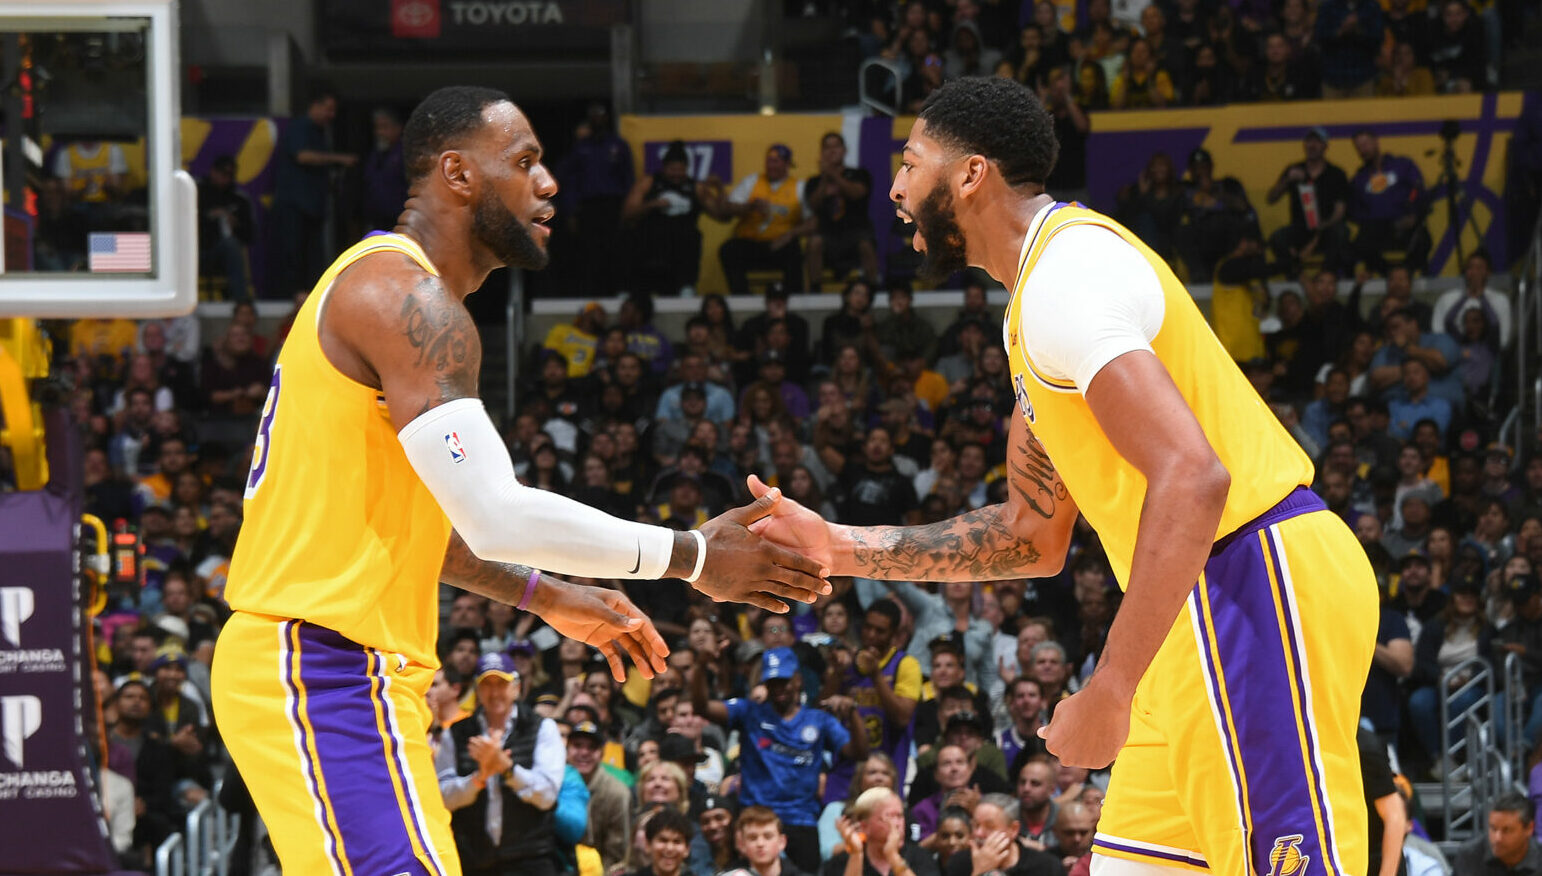 Blogtable: Will Lakers repeat as champions in 2020-21?